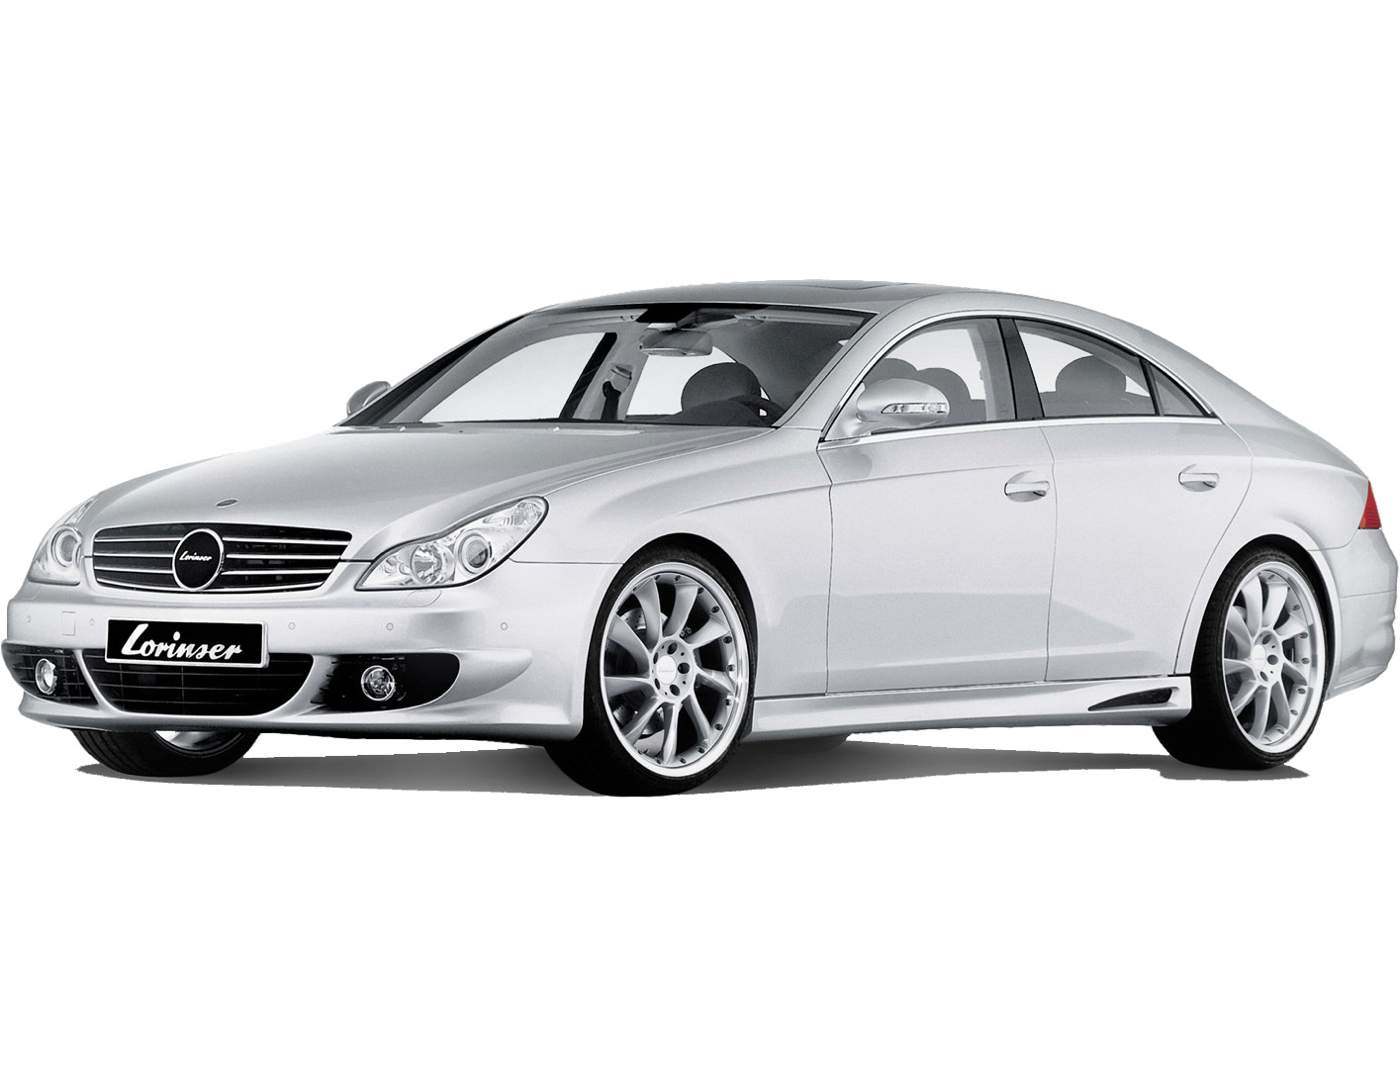 Download Mercedes PNG Image for Free.